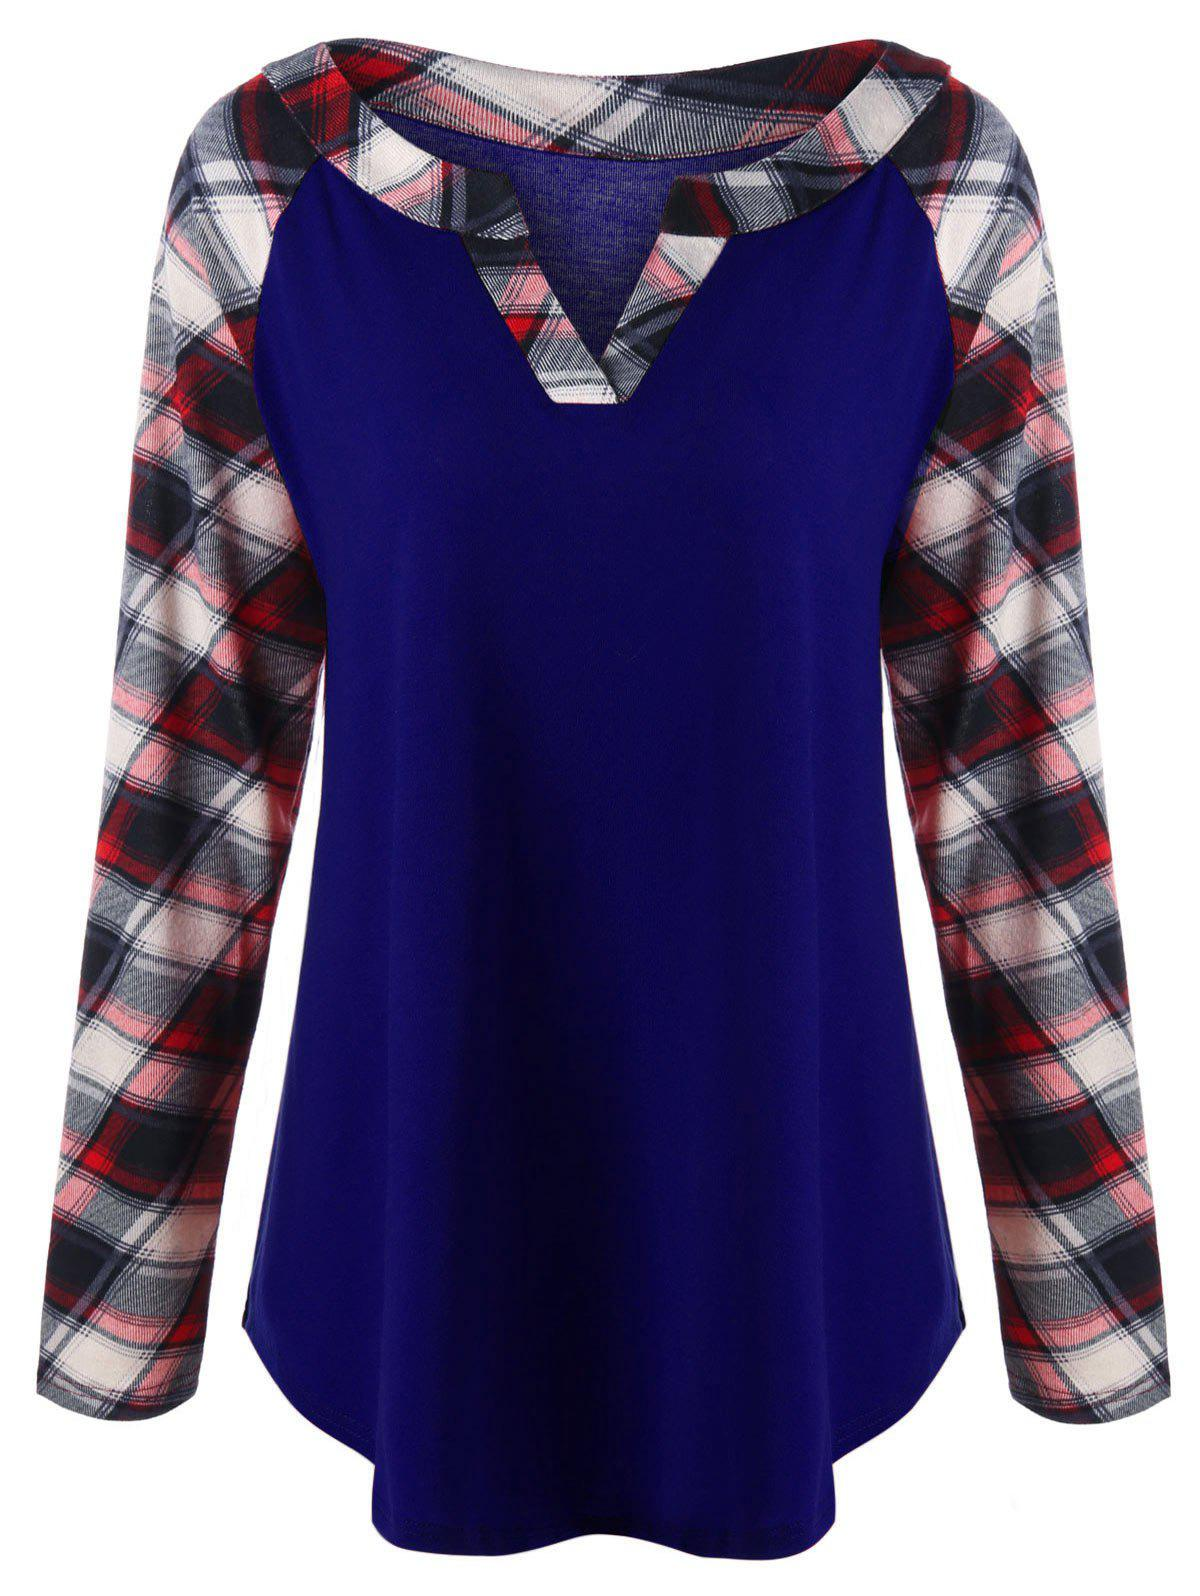 Plus Size Raglan Sleeve Plaid T-shirtWOMEN<br><br>Size: 4XL; Color: BLUE; Material: Rayon,Spandex; Shirt Length: Long; Sleeve Length: Full; Collar: V-Neck; Style: Casual; Season: Fall,Spring; Pattern Type: Plaid; Weight: 0.3000kg; Package Contents: 1 x Top;